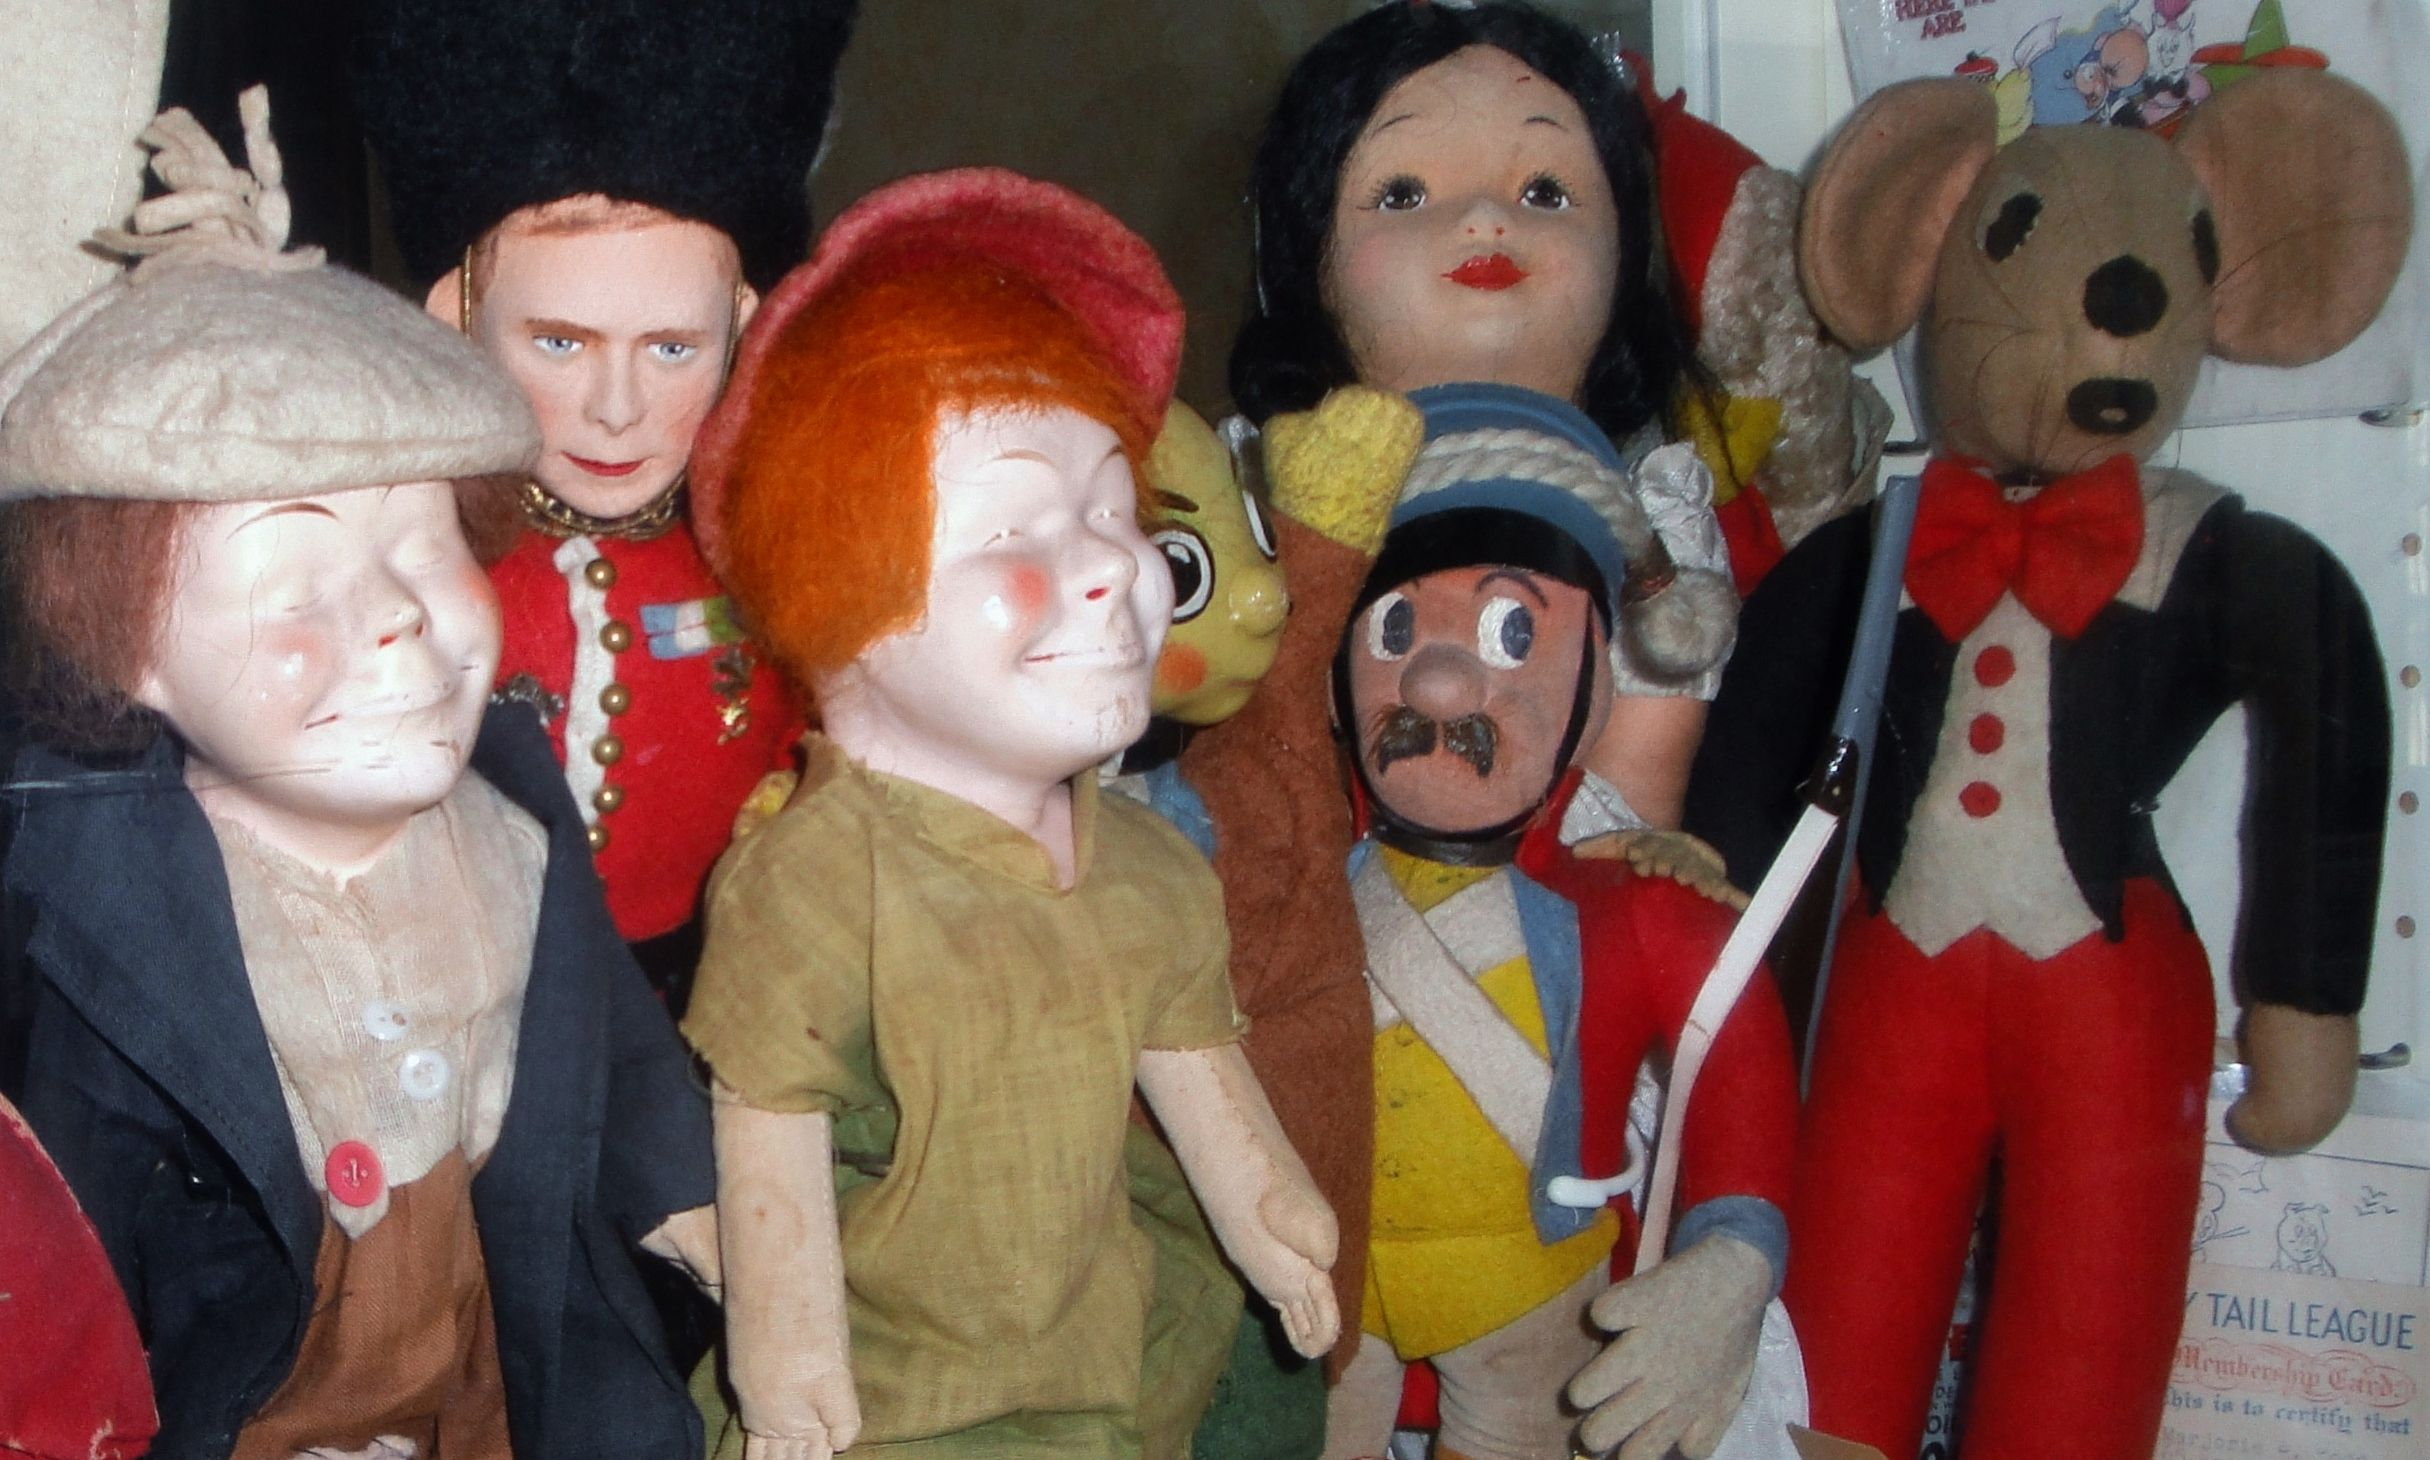 BISTO KIDS Maker unknown. KING GEORGE V1 by Farnell. SAM by Deans Rag Book. SNOW WHITE by Chad Valley. TEDDY TAIL Maker unknown. All c1930s.